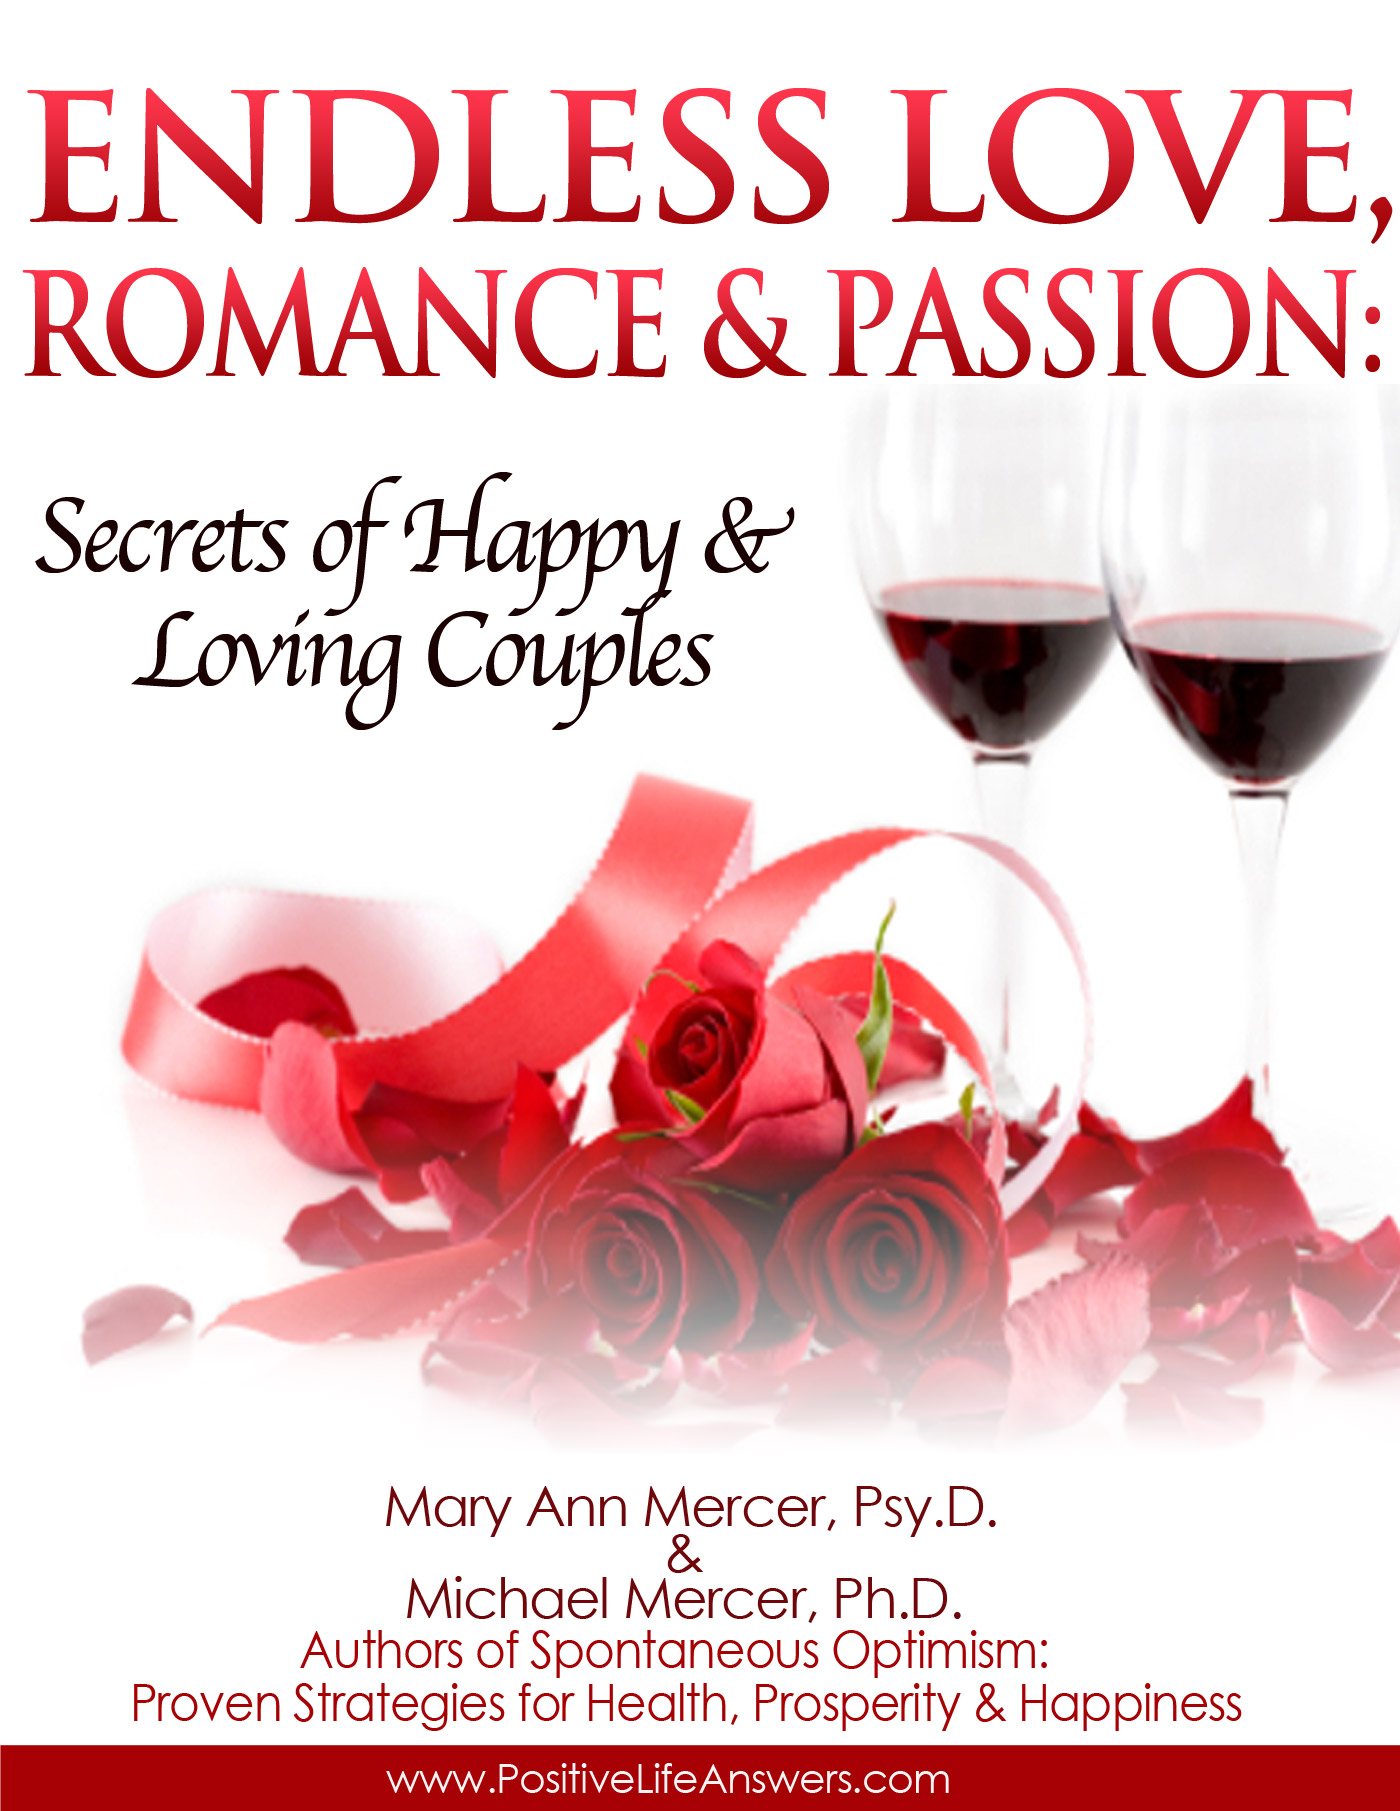 E-BOOK:Endless Love, Romance & Passion : Secrets of Happy & Loving Couples™ by Drs. Mary Ann & Michael Mercer